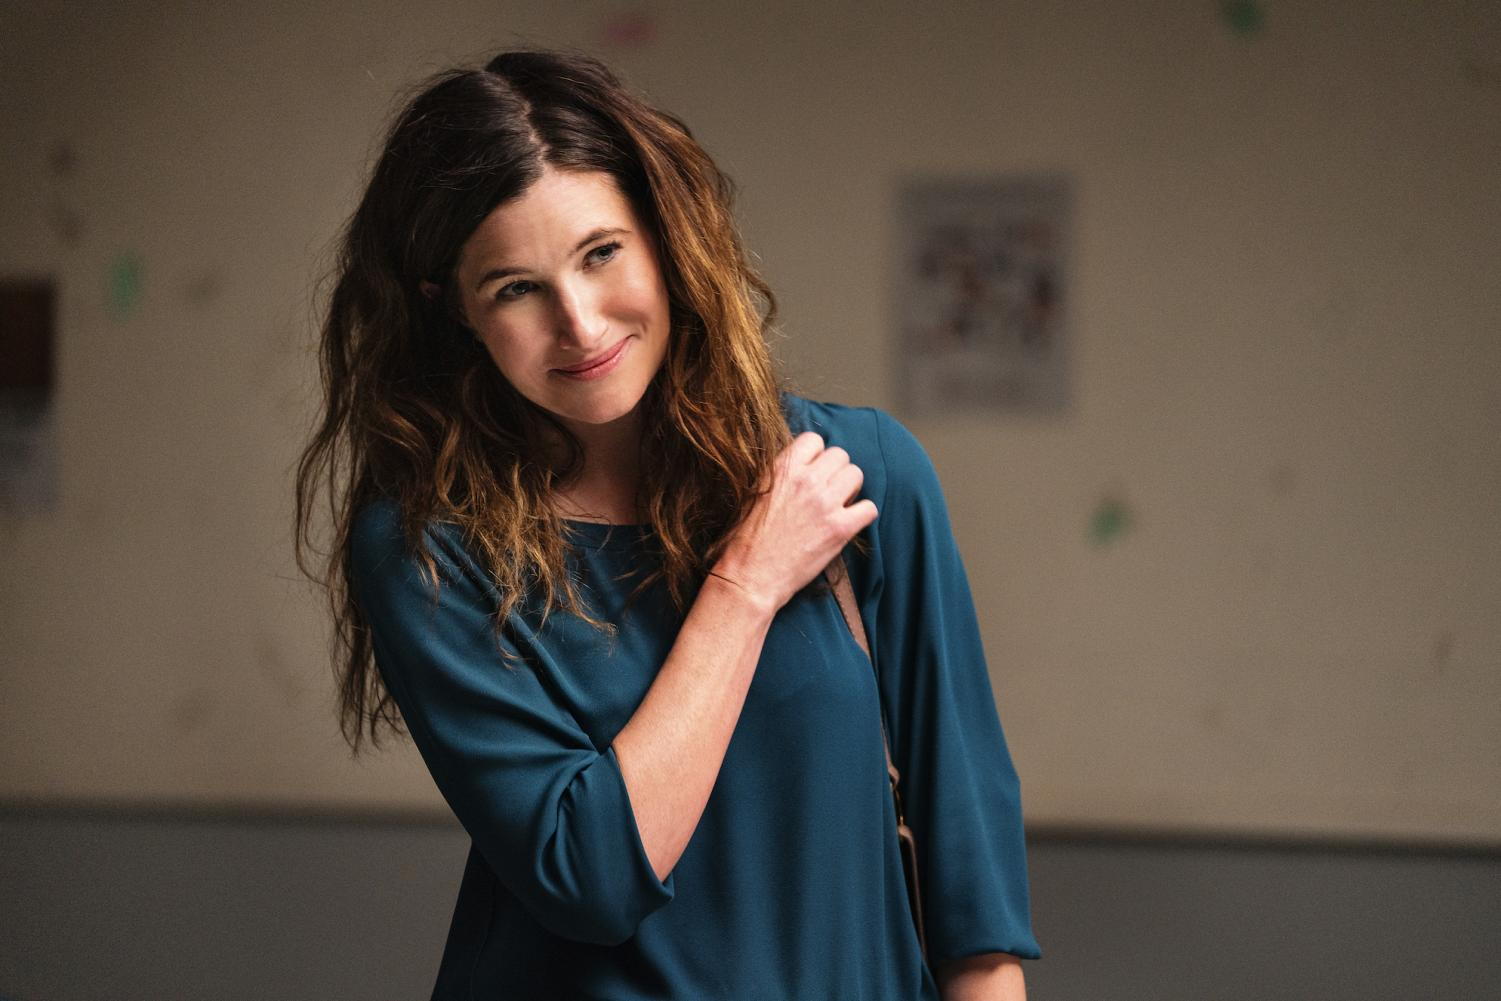 The Daily Northwestern | Kathryn Hahn talks taking the lead in HBO's 'Mrs. Fletcher'